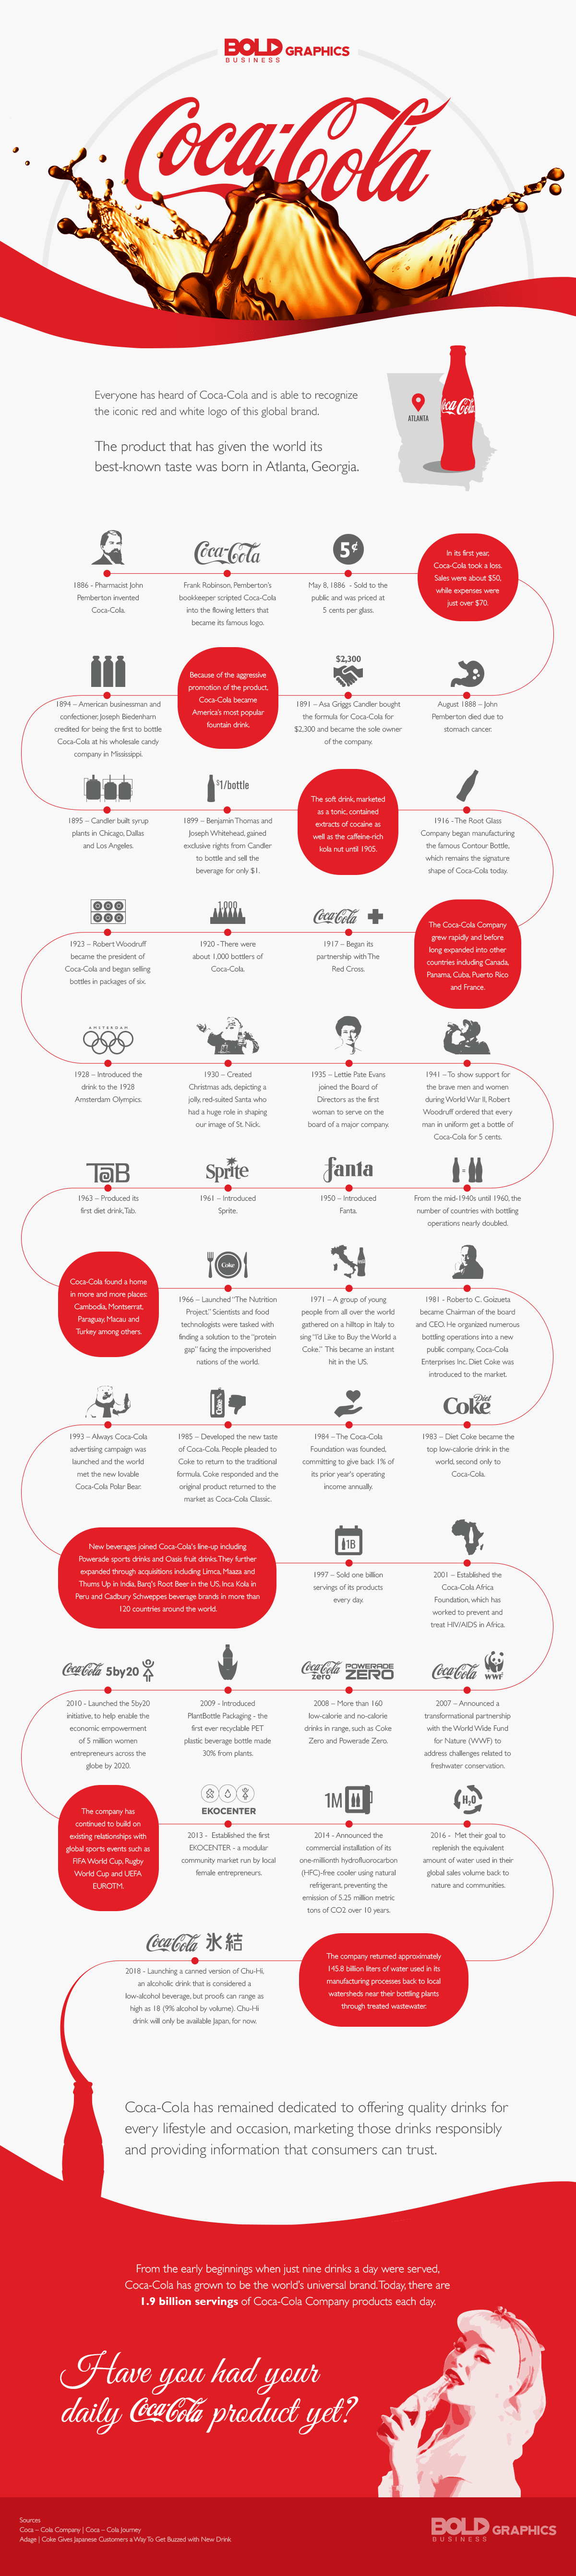 coca cola history infographic,coca cola,coca cola ad,coca cola advertisement,coca cola bottle,coca cola bottling company,coca cola brands